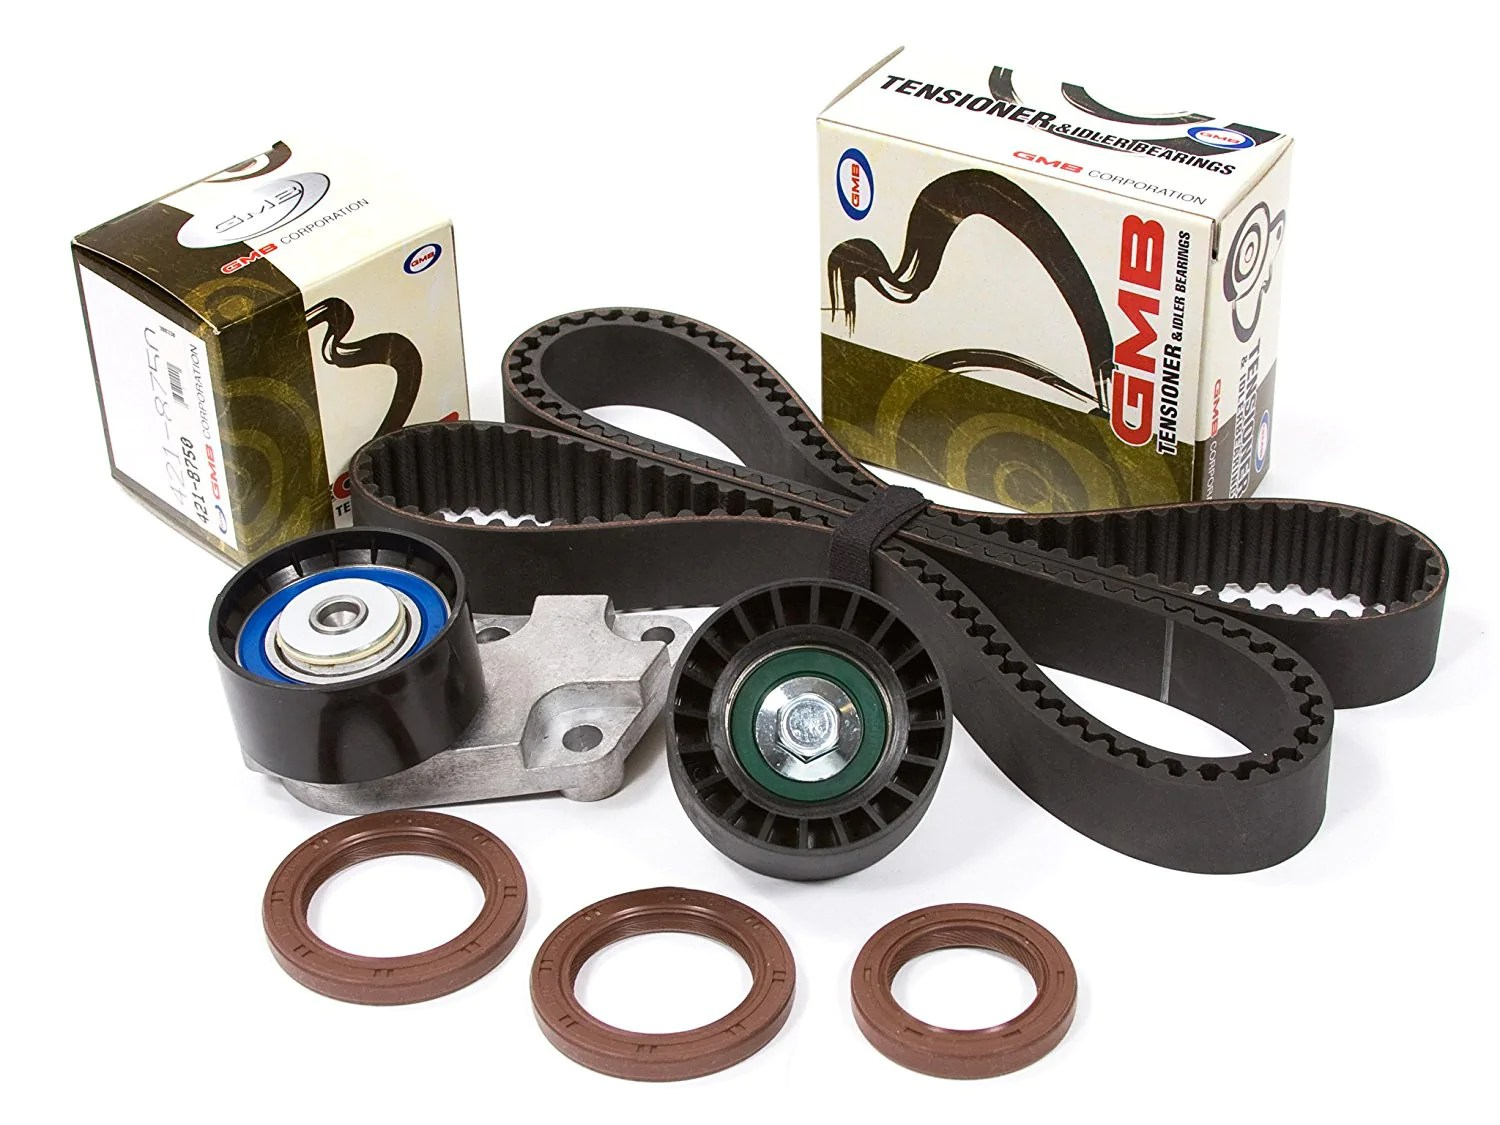 hight resolution of timing belt kit for 1999 2002 daewoo lanos 1 6l 1598cc 98cid dohc 16 proparts usa